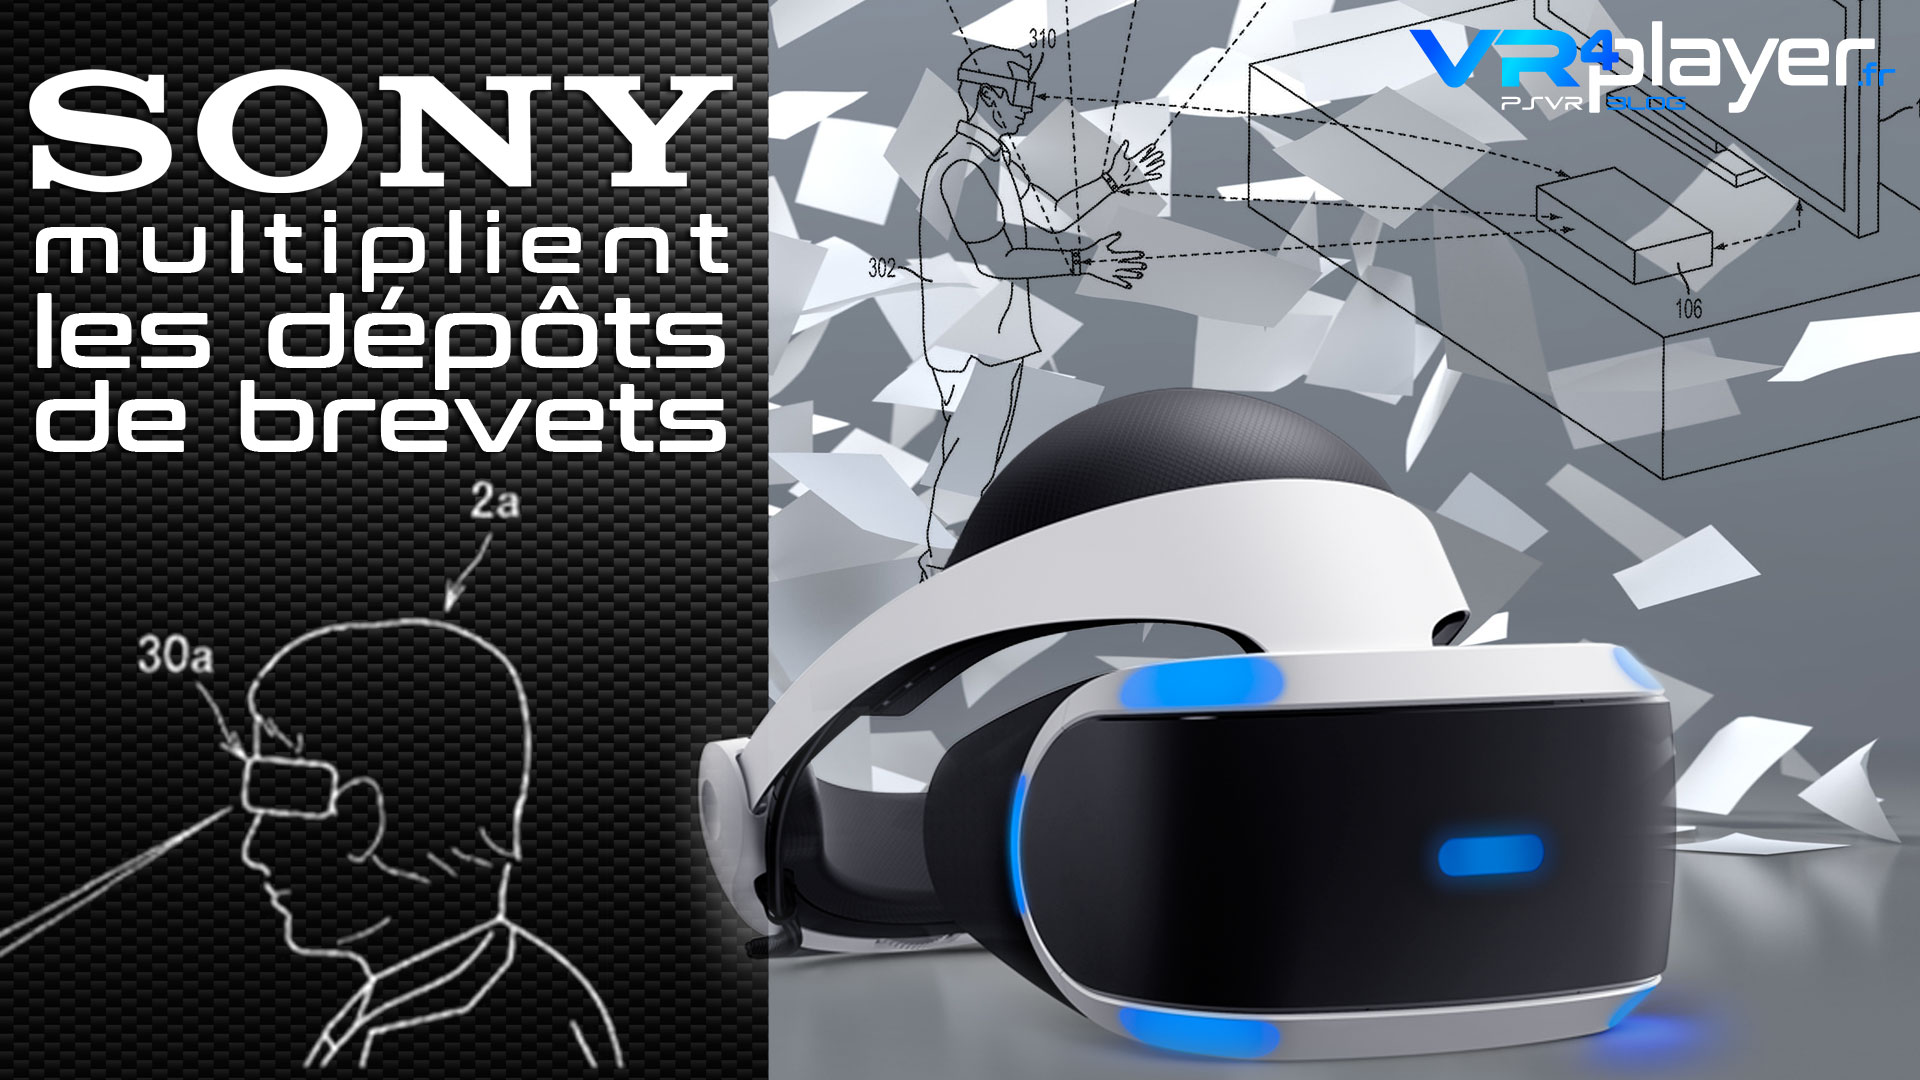 Brevet Sony : PlayStation VR2 VR4player